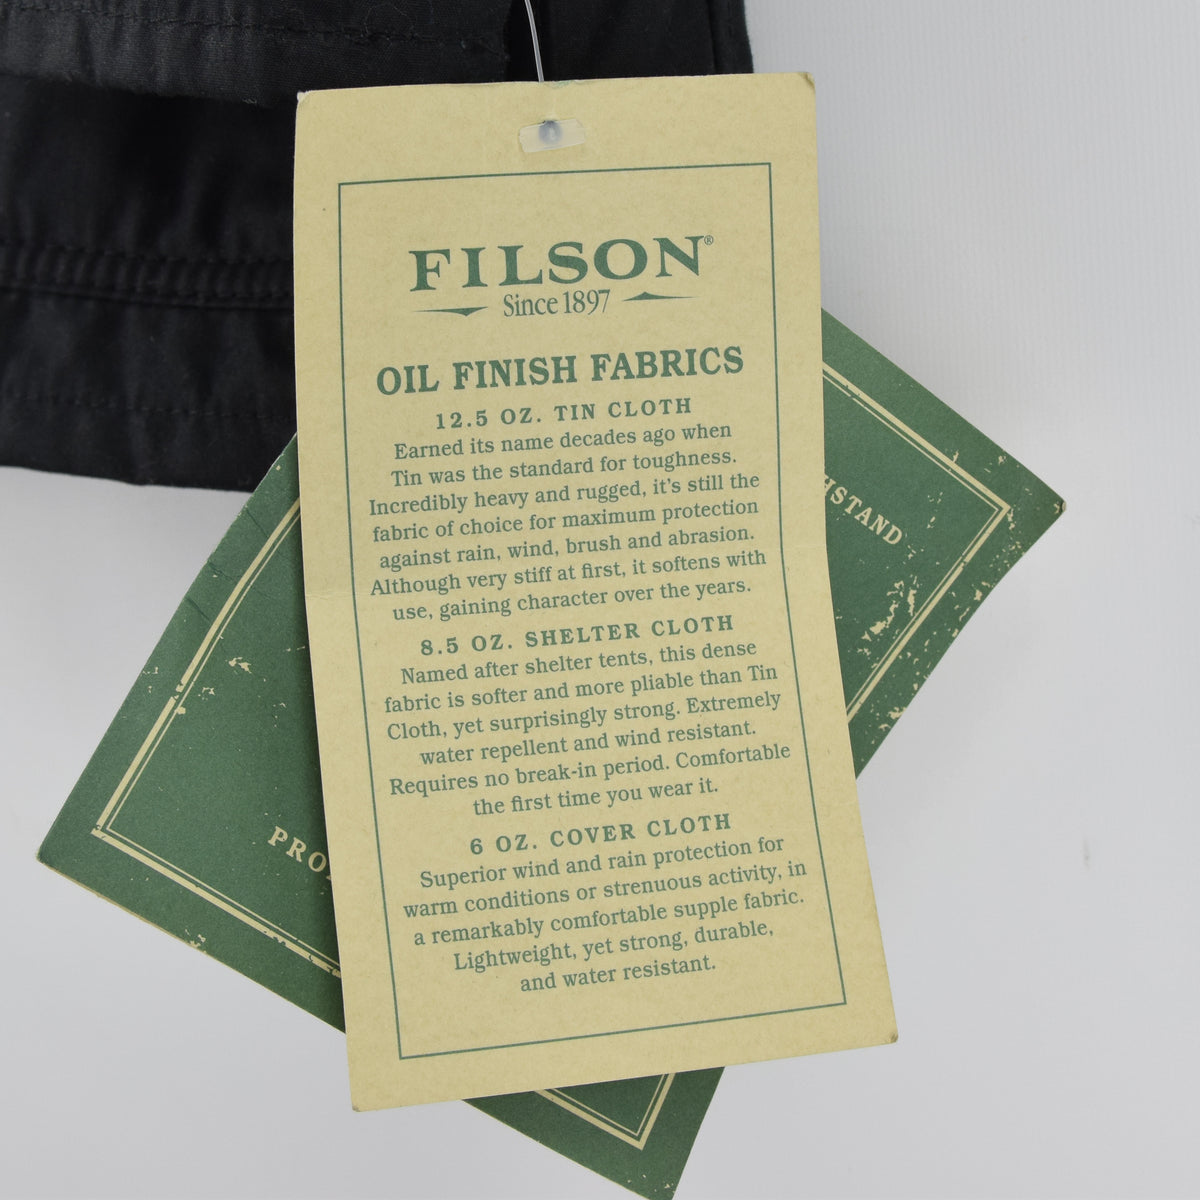 Filson Cover Cloth Mile Marker Coat Black Wax Cotton Jacket Made in USA M labels